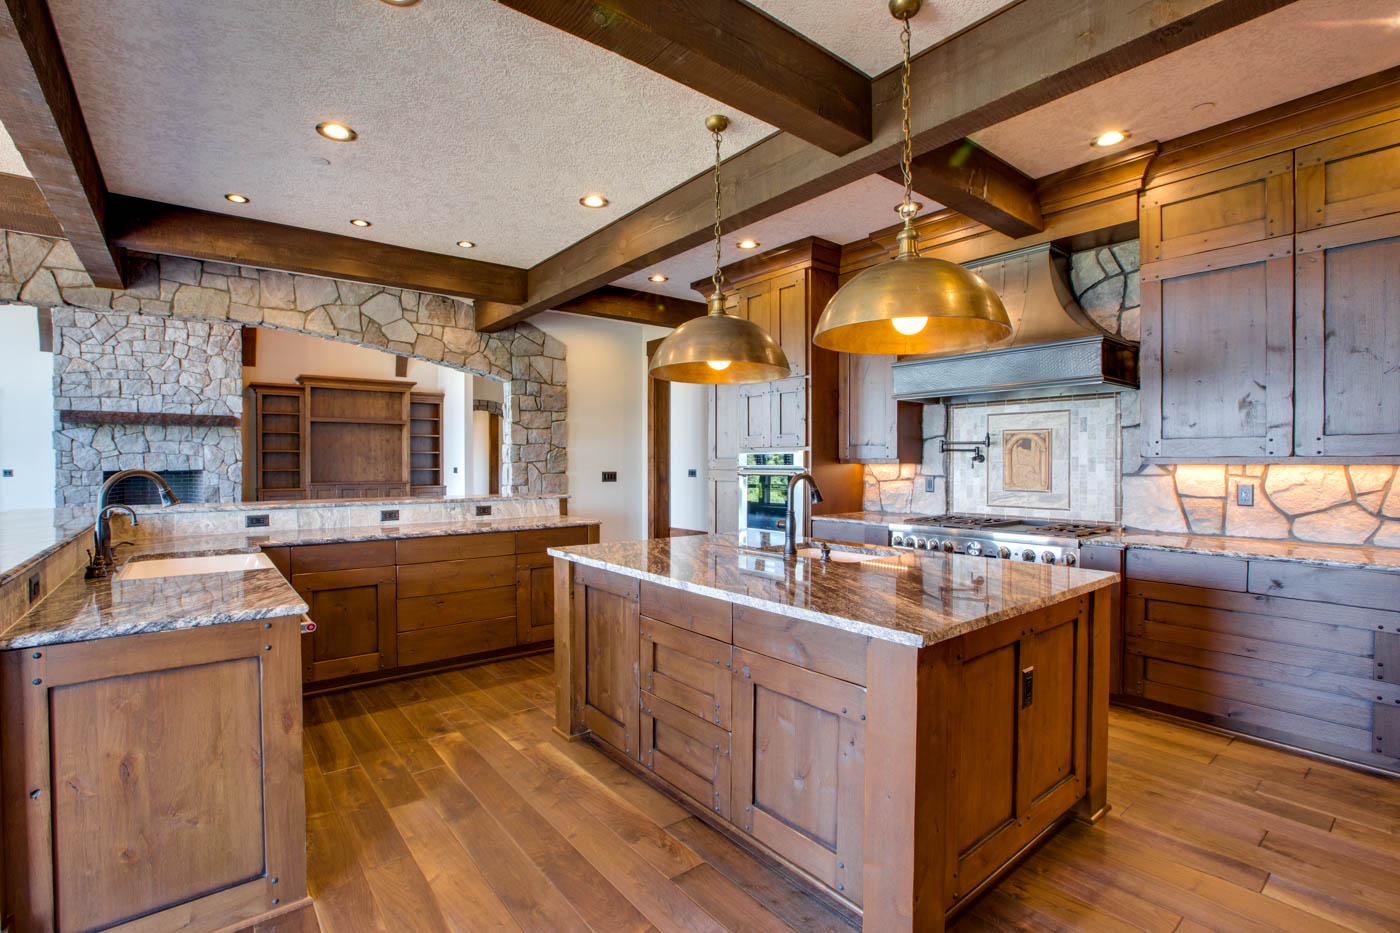 kitchen_18010-s-ramsby-rd_080_webres